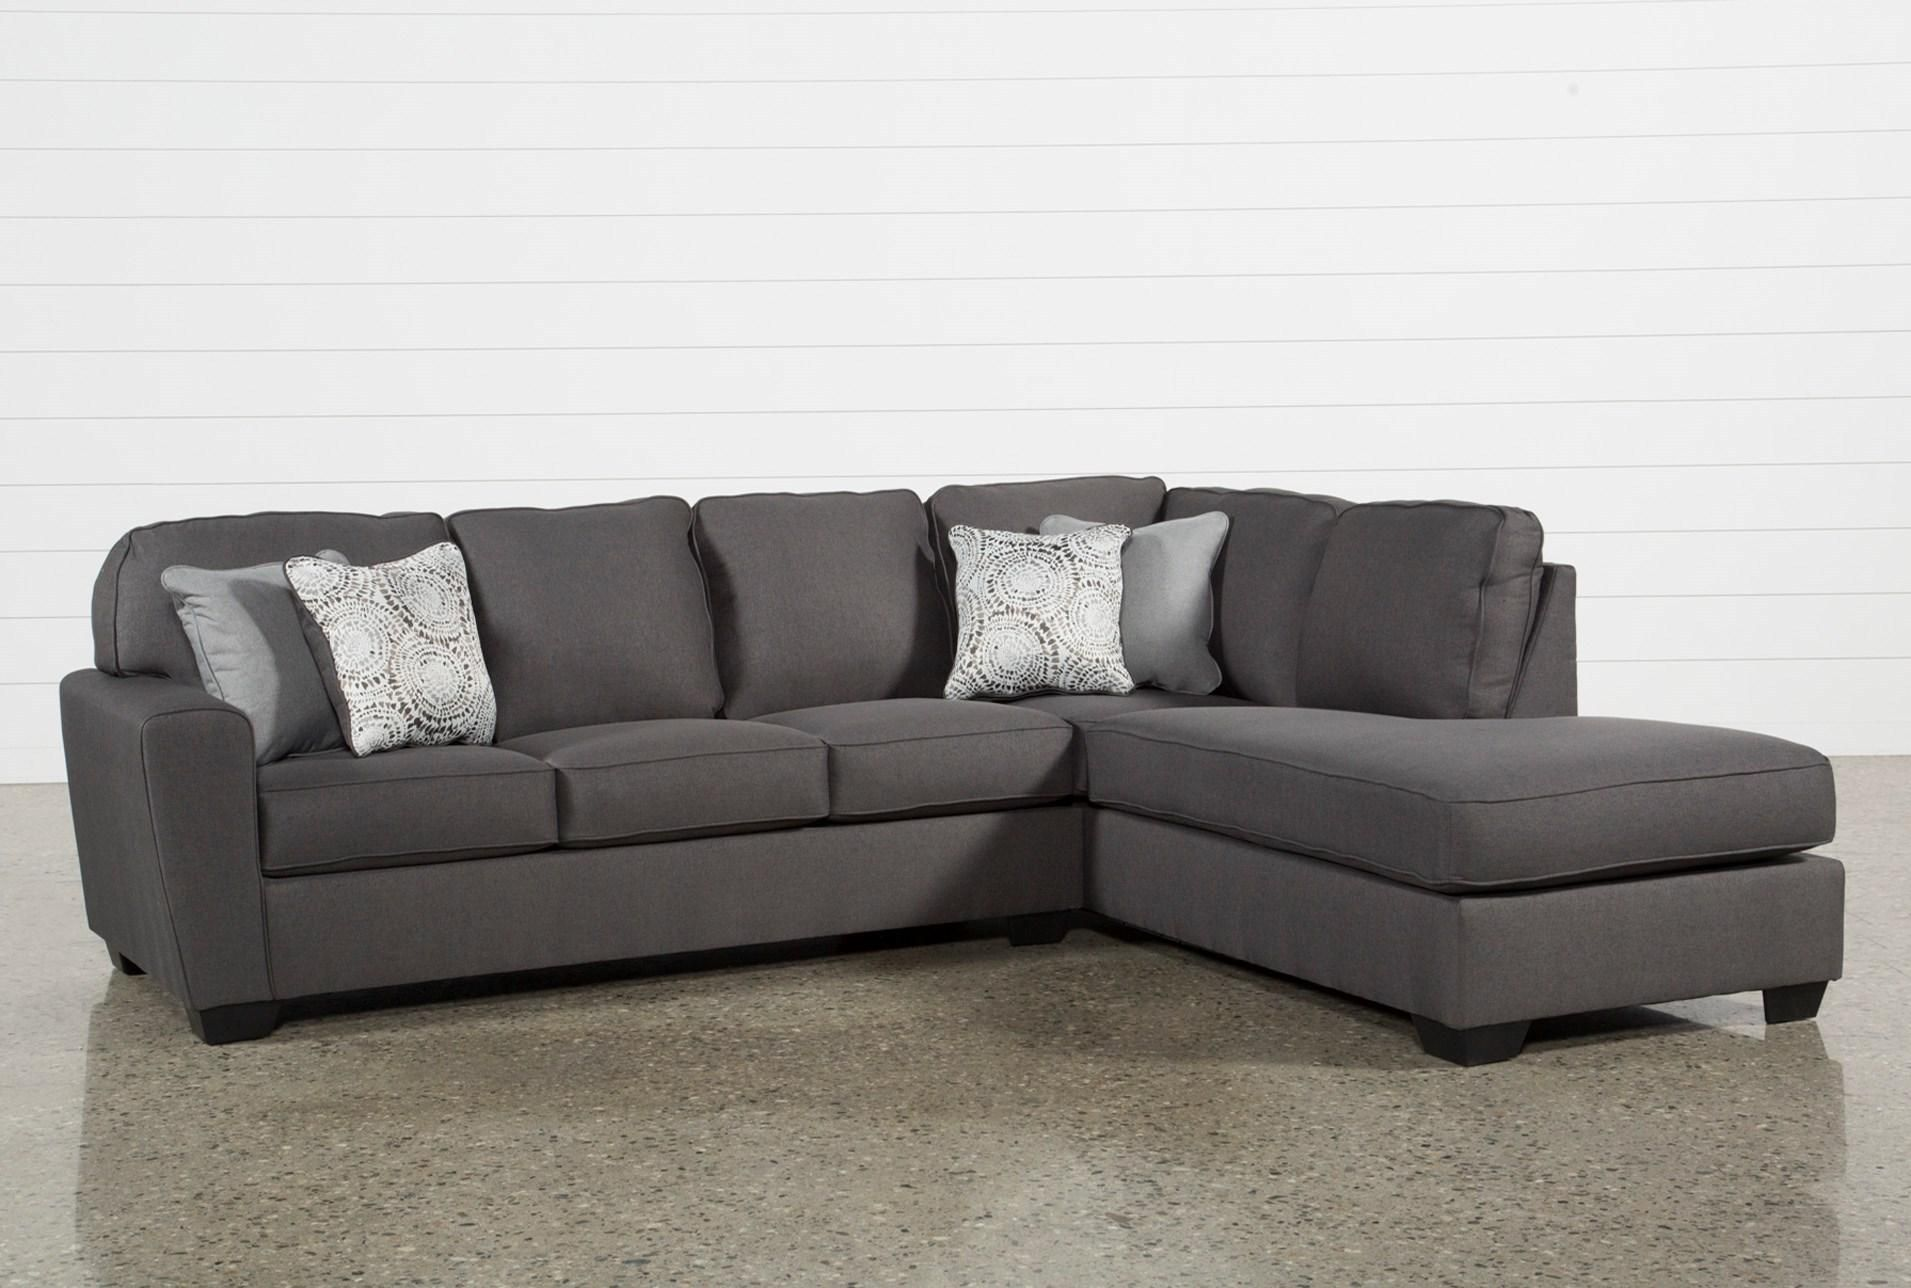 Mcdade Graphite 2 Piece Sectional With Right Arm Facing Armless Chaise Grey Sectional Sofa Grey Sectional Couch Living Spaces Sectional